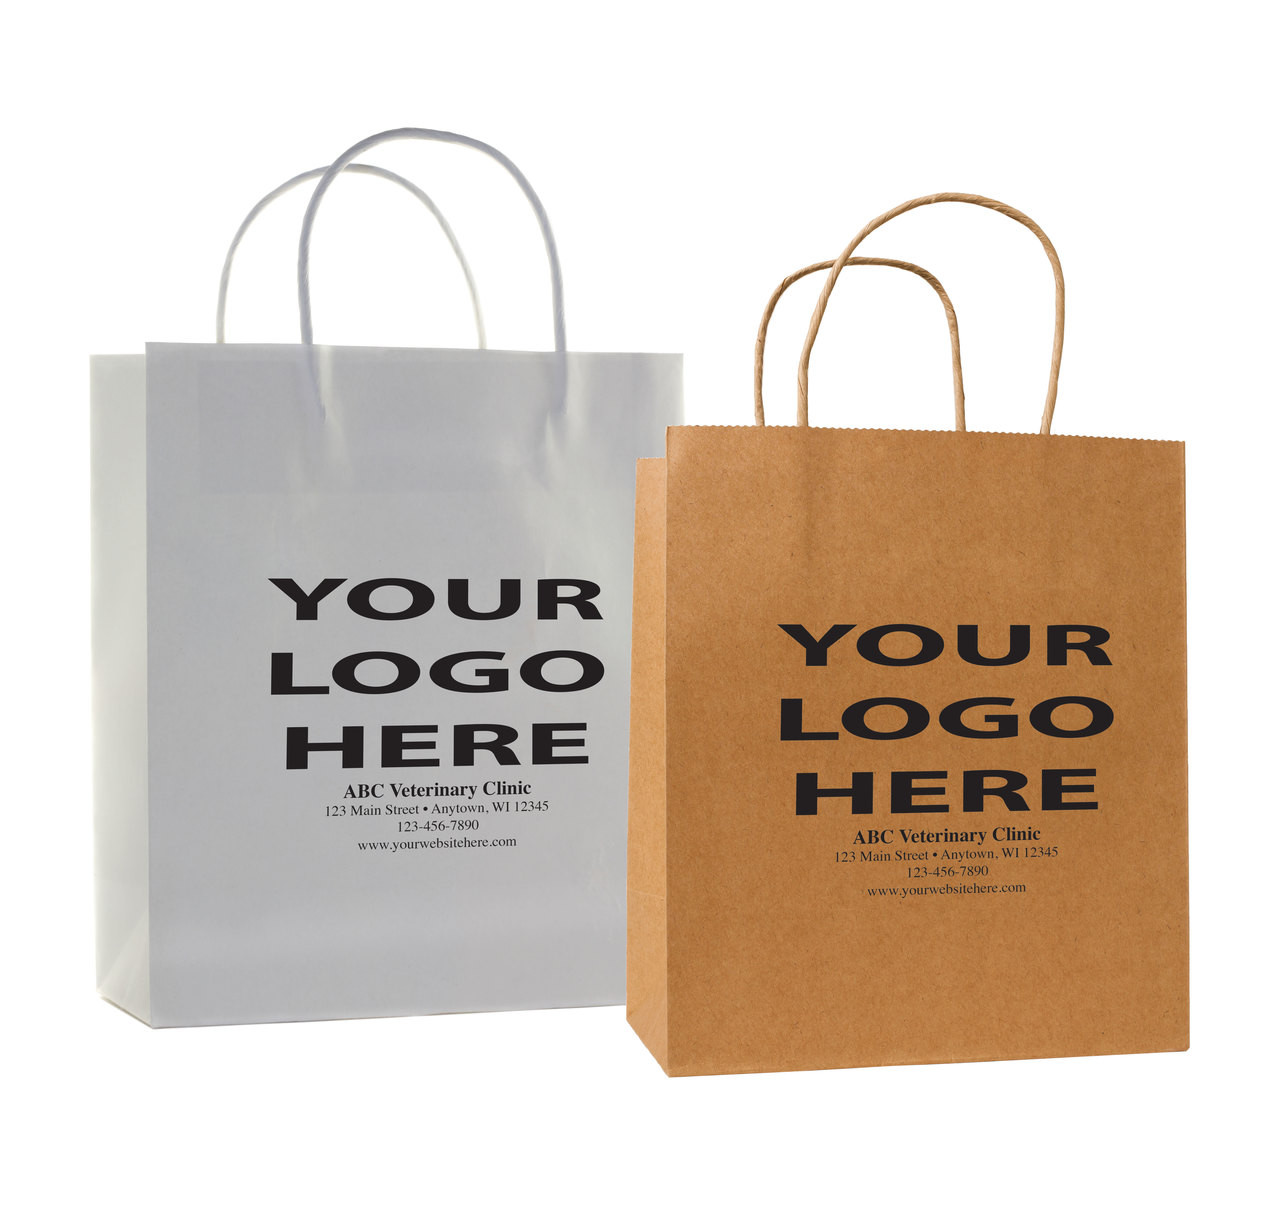 HSDP - Personalized Handled Paper Bag (Multiple Imprint Colors Available) Call us at 877-761-6933 for more info!